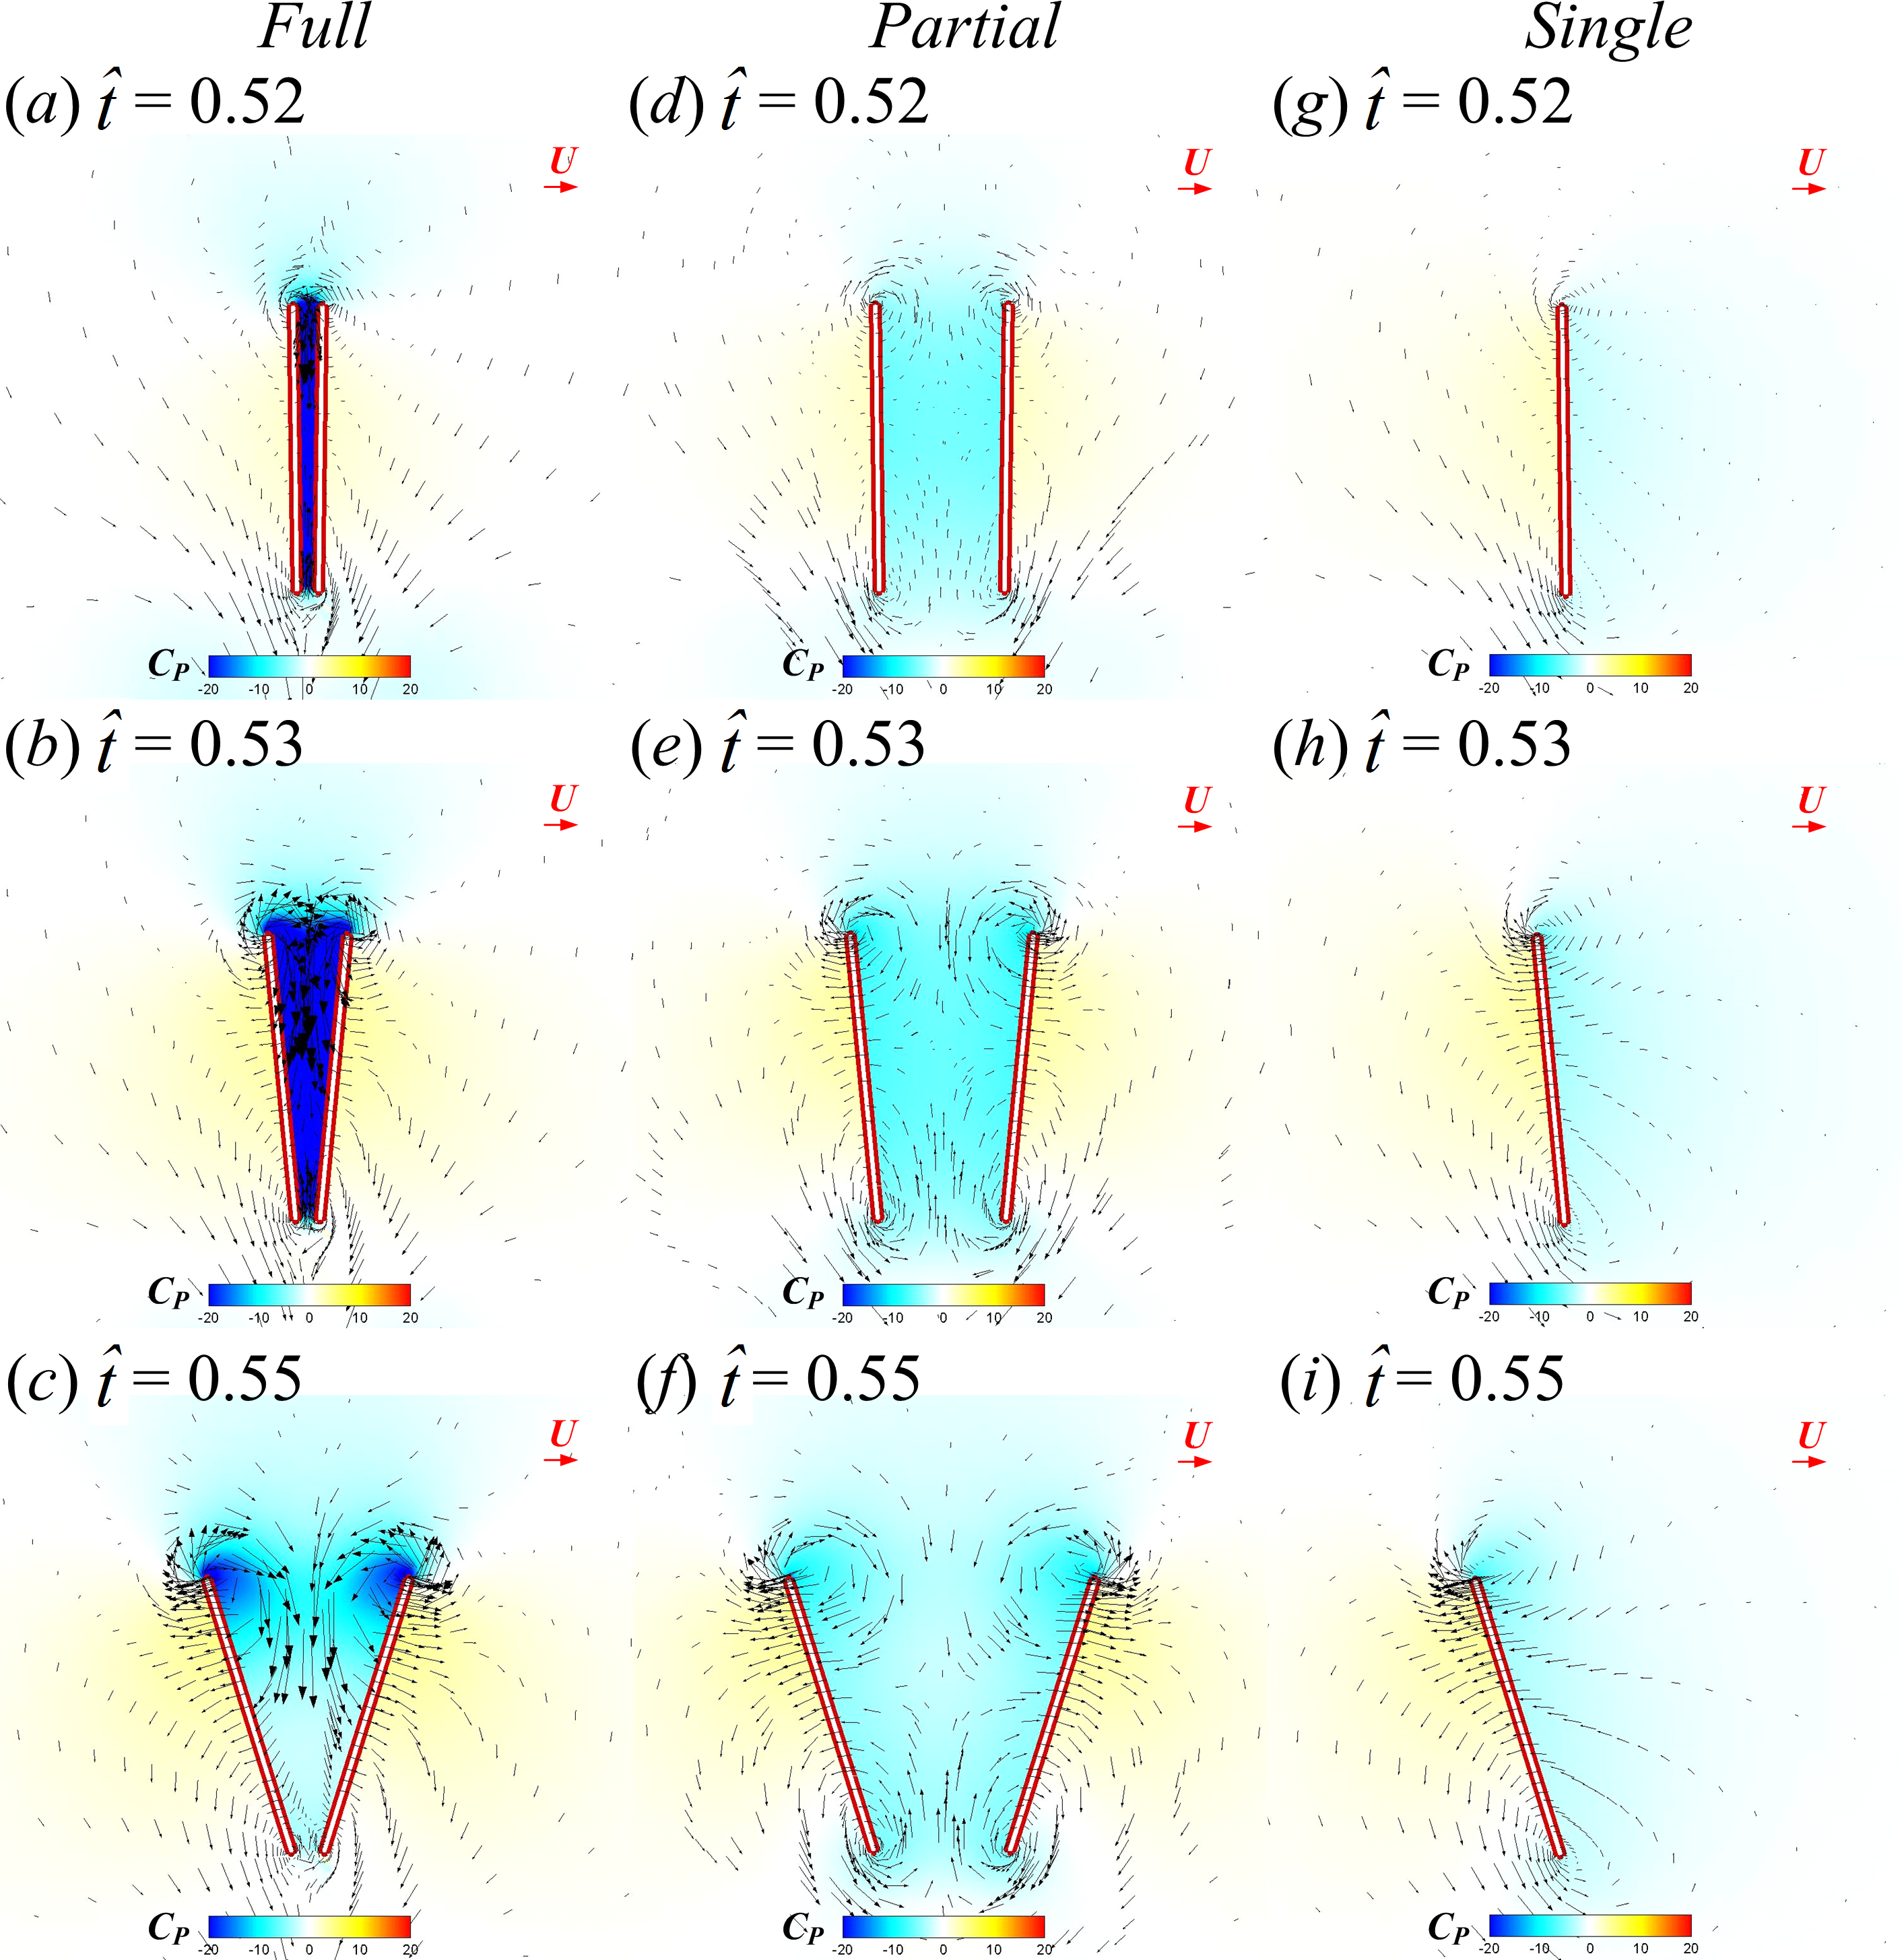 Aerodynamic forces and flows of the full and partial clap